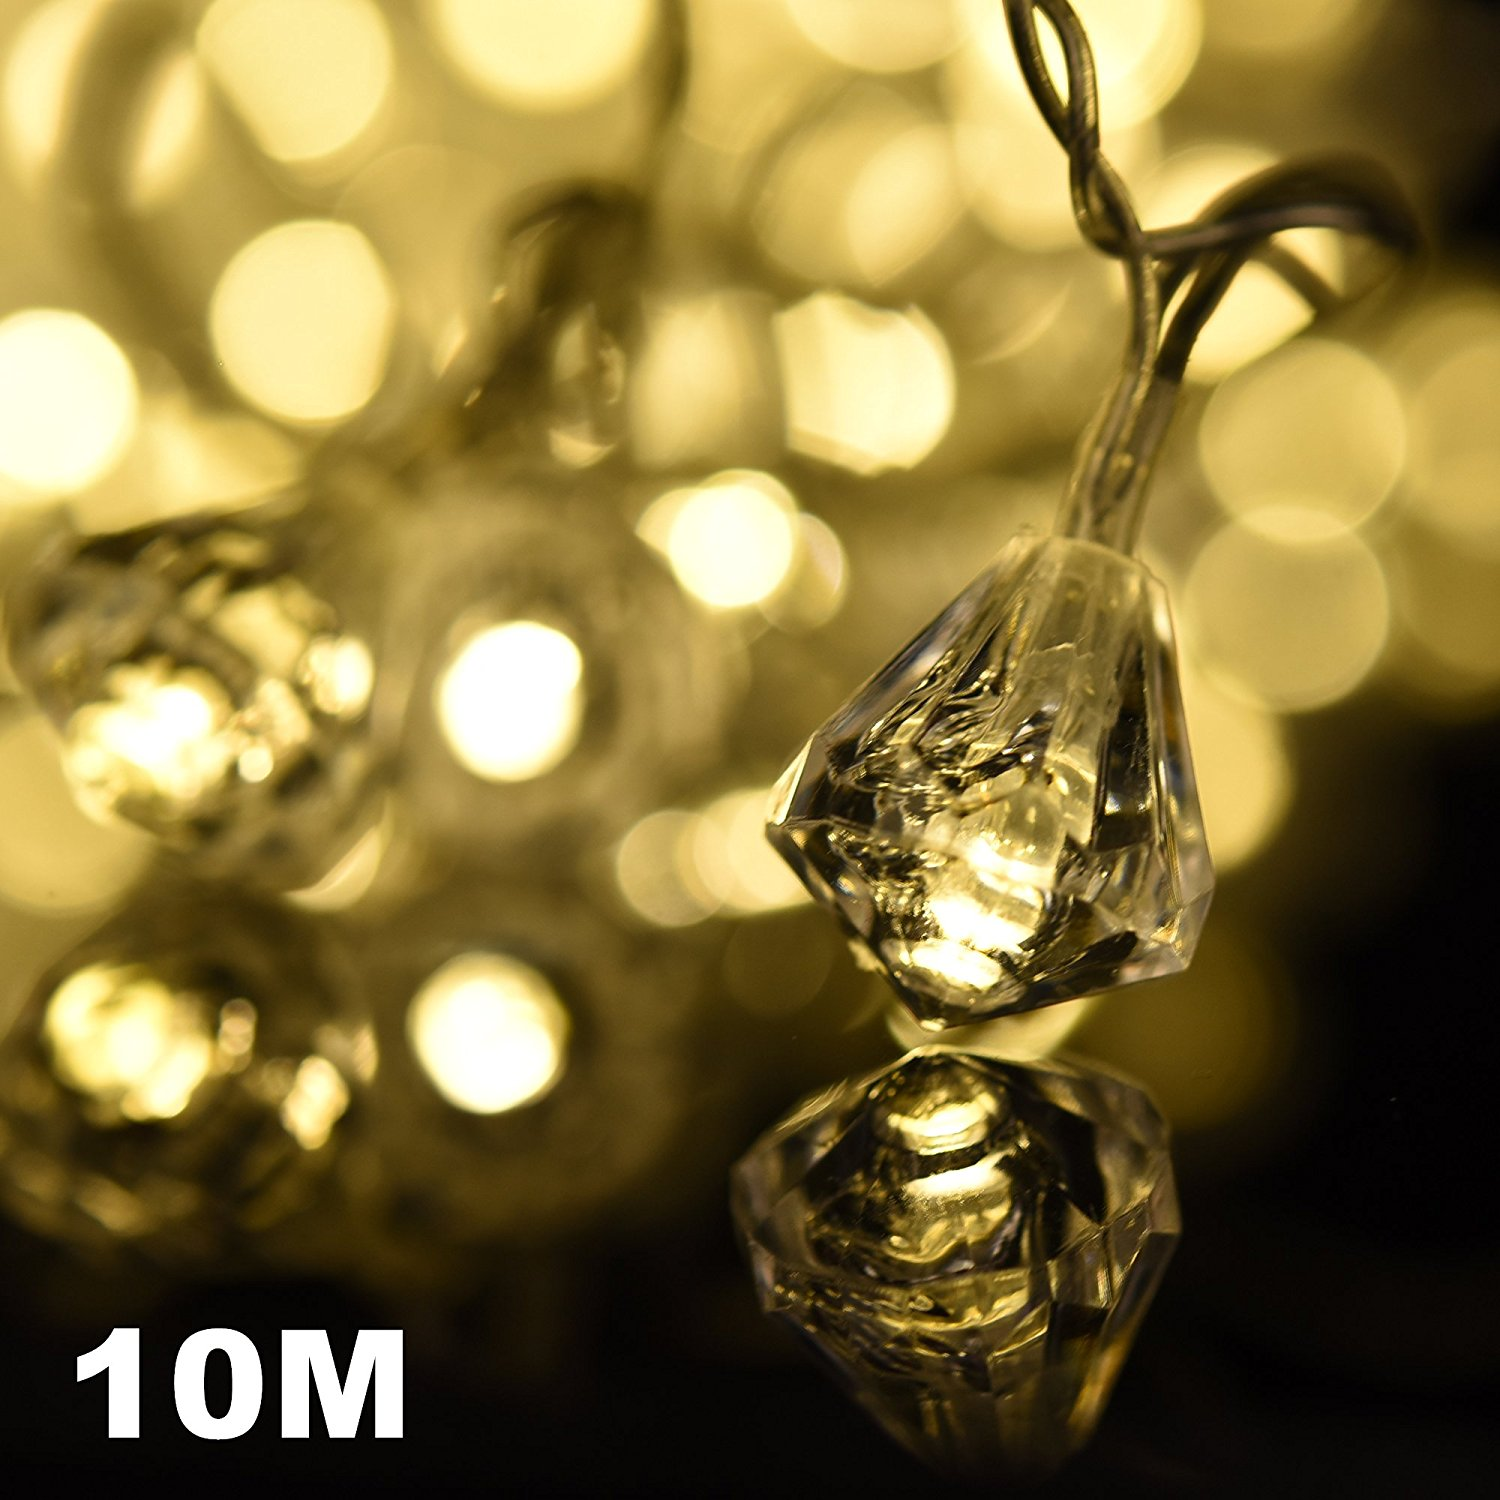 amazlab t10dw 10 meter33 feet warm white diamond micro led string lights 100 led bulbs indoor outdoor decorative lights dc powered